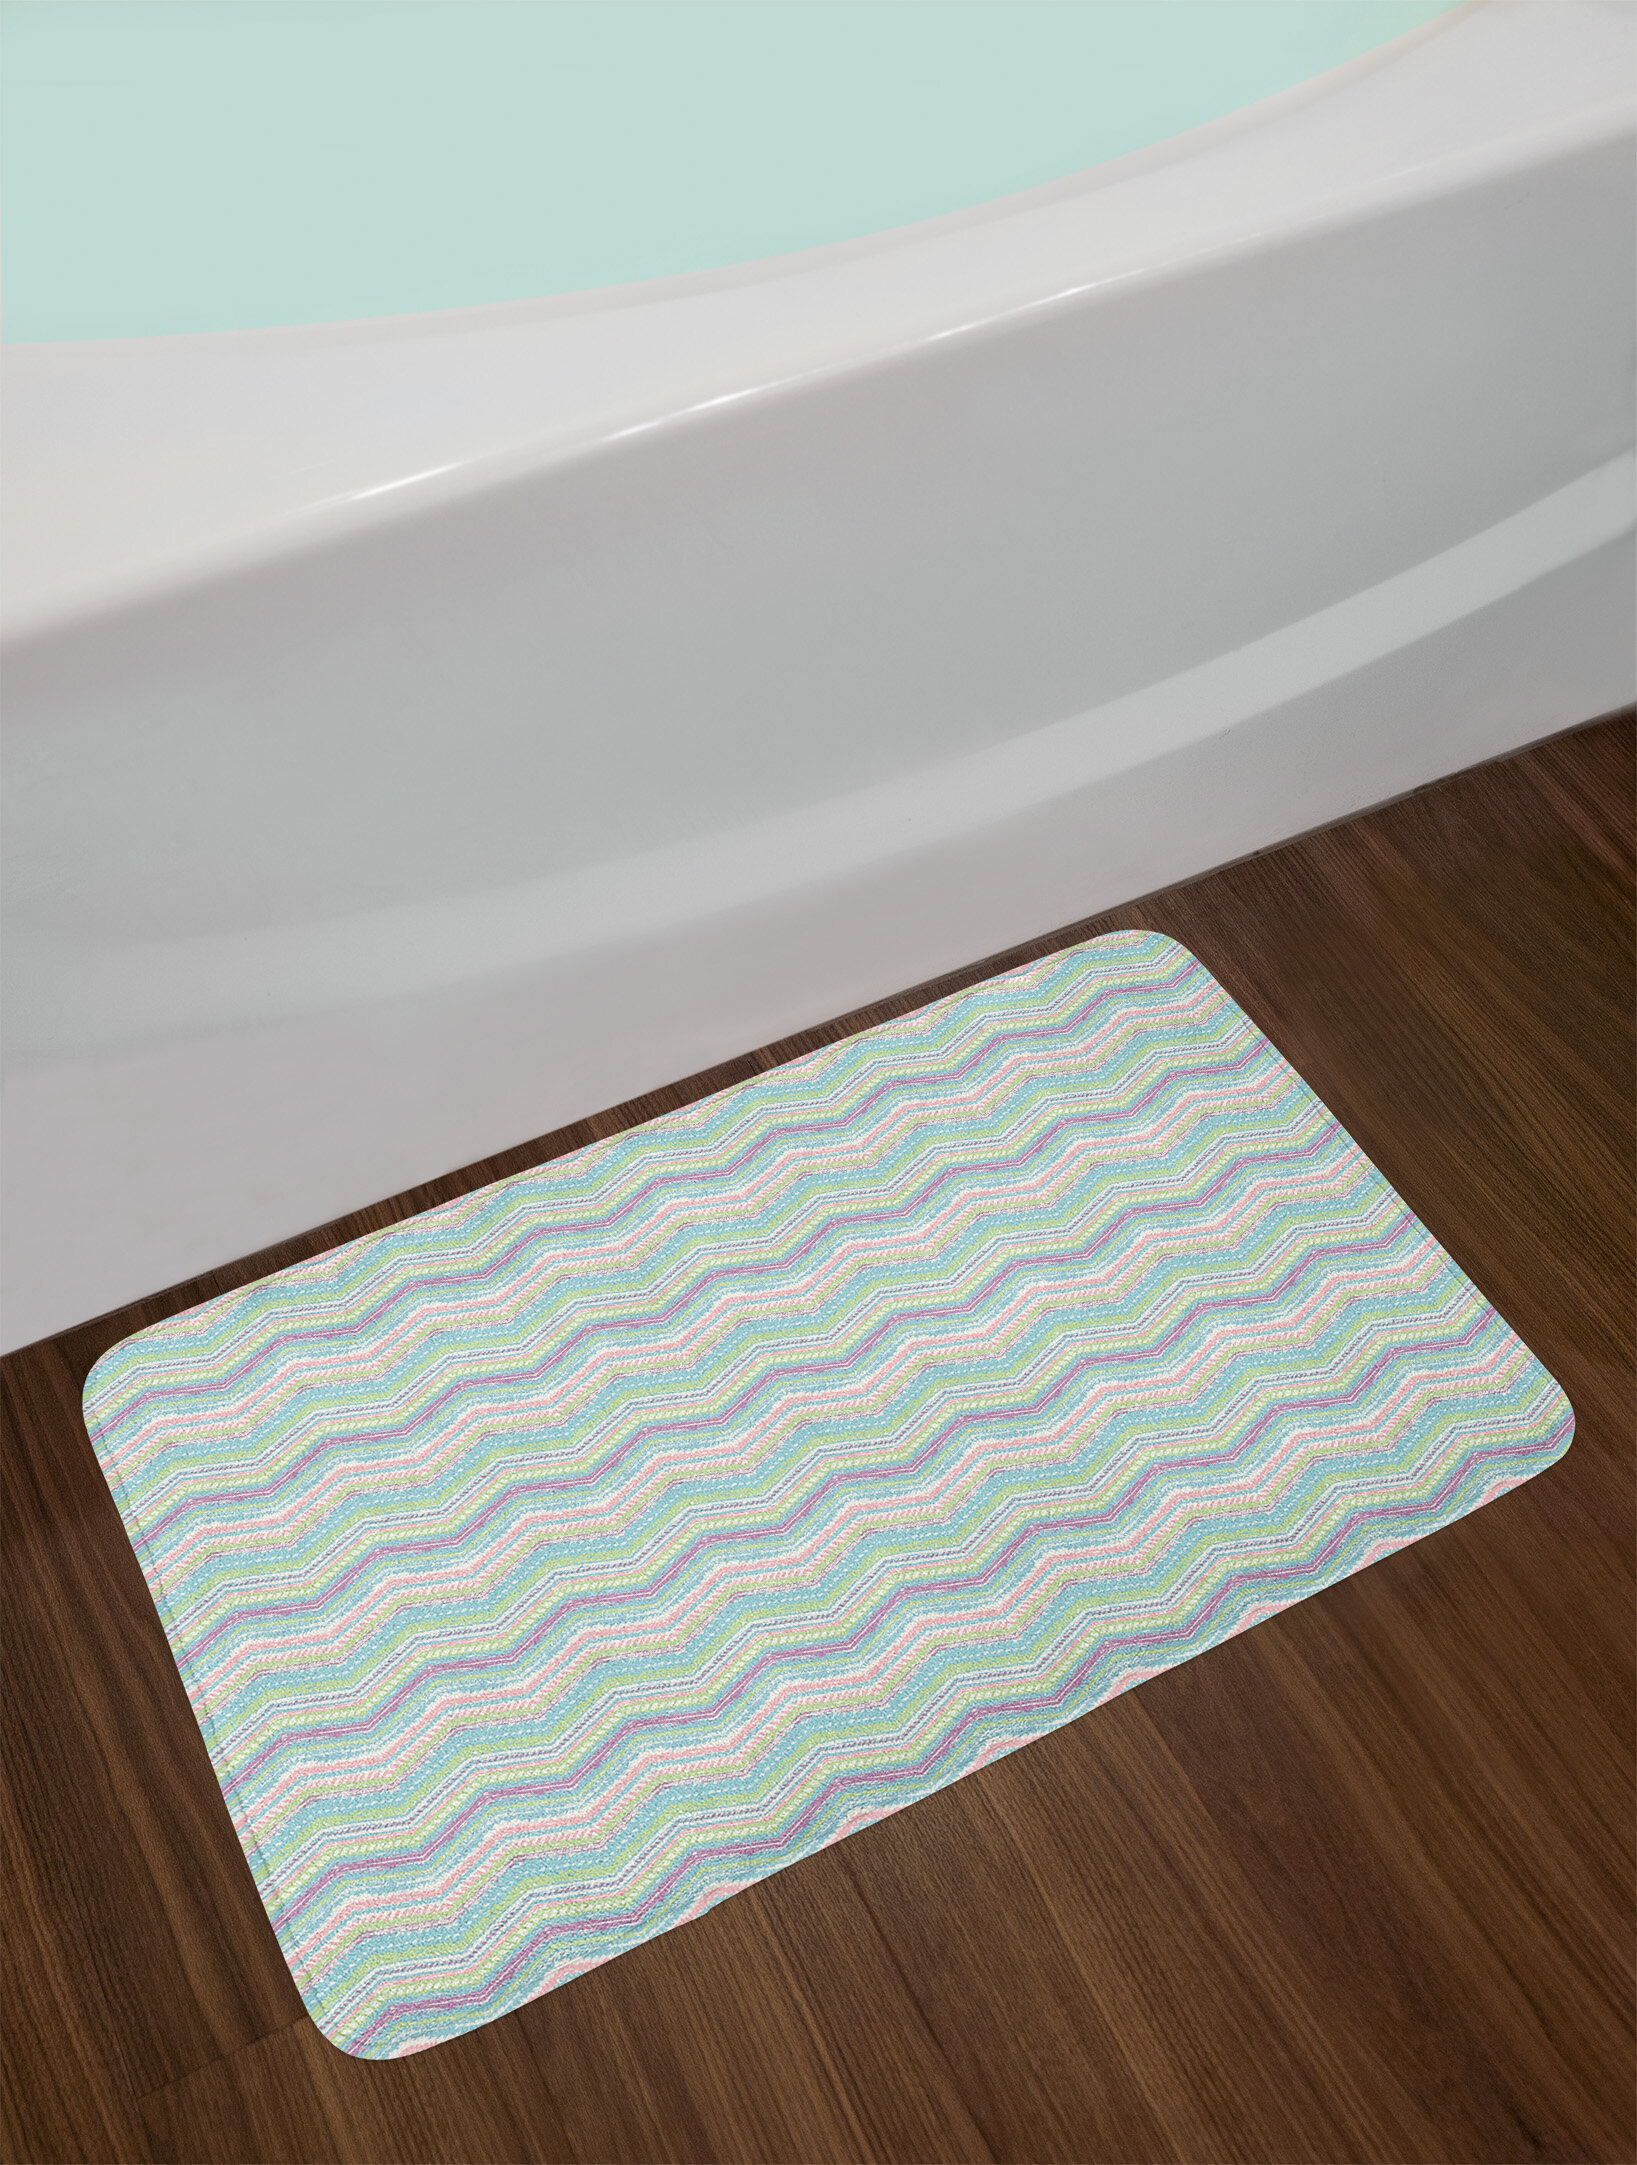 8270453cf7b8 Ambesonne Pastel Bath Mat by, Hand Painted Style Tribal Design with Zigzag  Triangle Motifs Ethnic Stripe Line, Plush Bathroom Decor Mat with Non Slip  ...